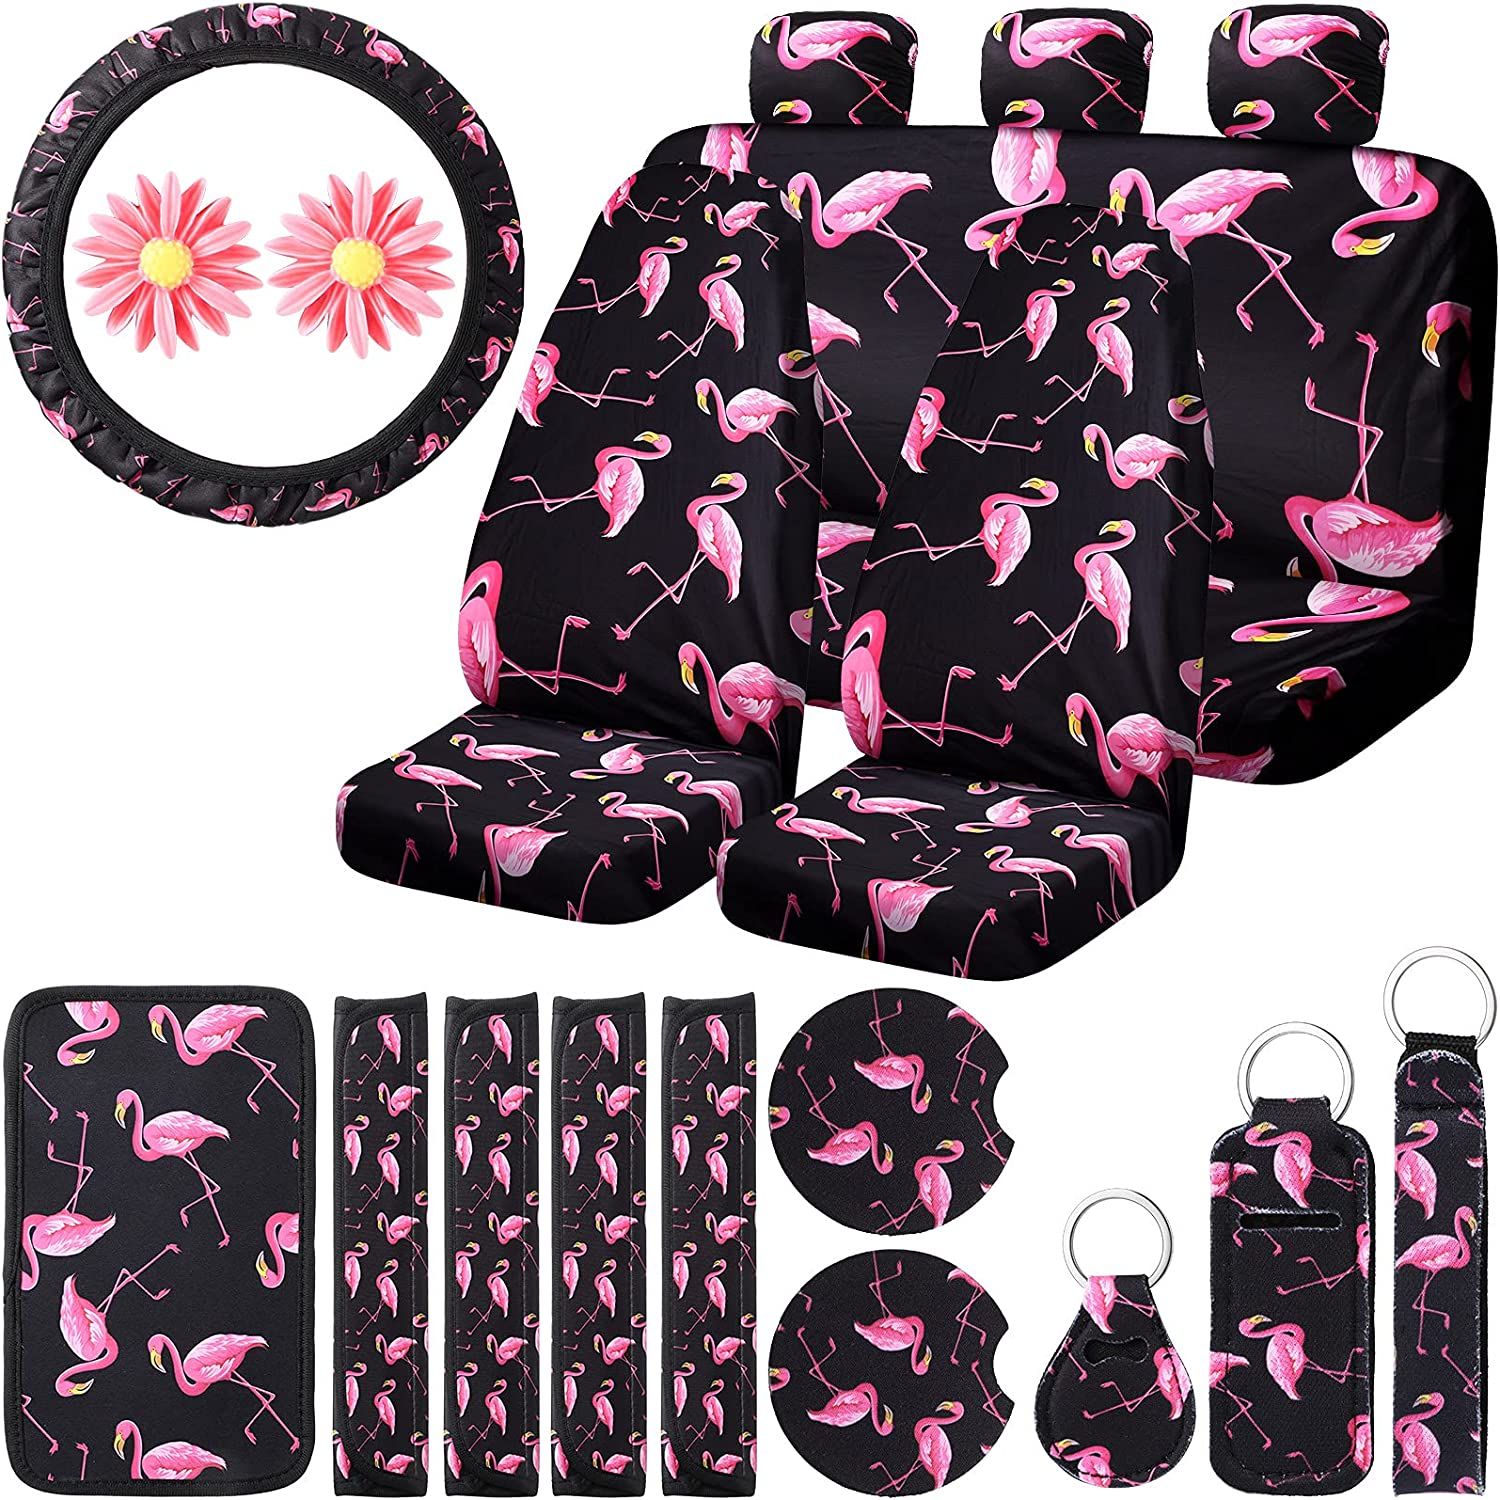 20 Pieces Selling Flamingo Car Accessories with Seat Luxury goods Set Co